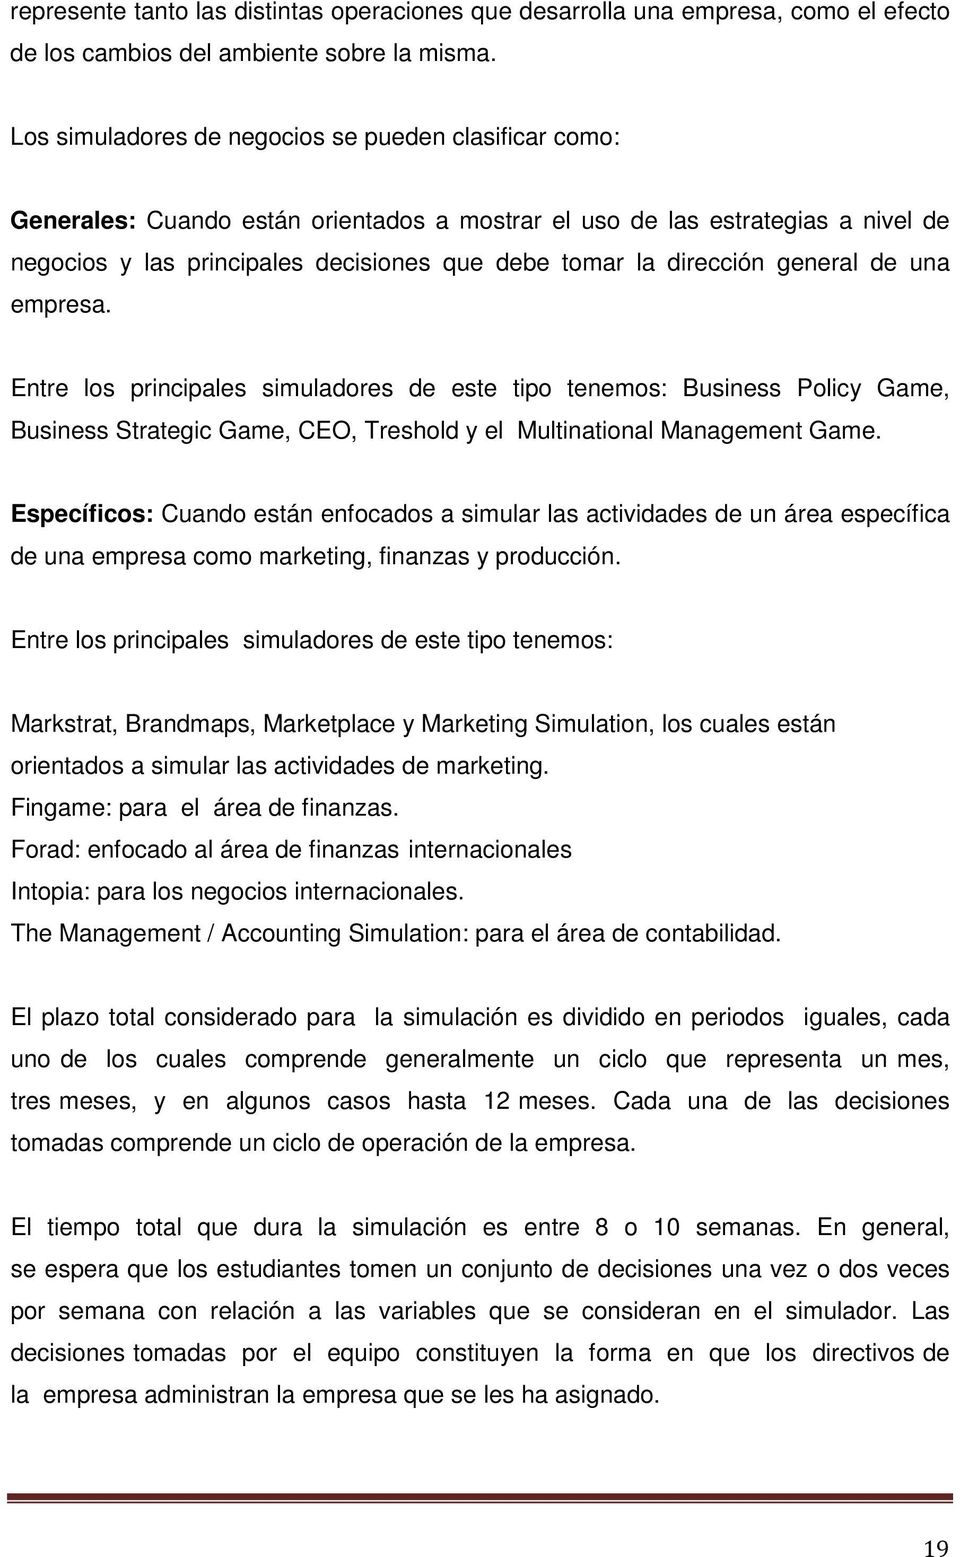 dirección general de una empresa. Entre los principales simuladores de este tipo tenemos: Business Policy Game, Business Strategic Game, CEO, Treshold y el Multinational Management Game.